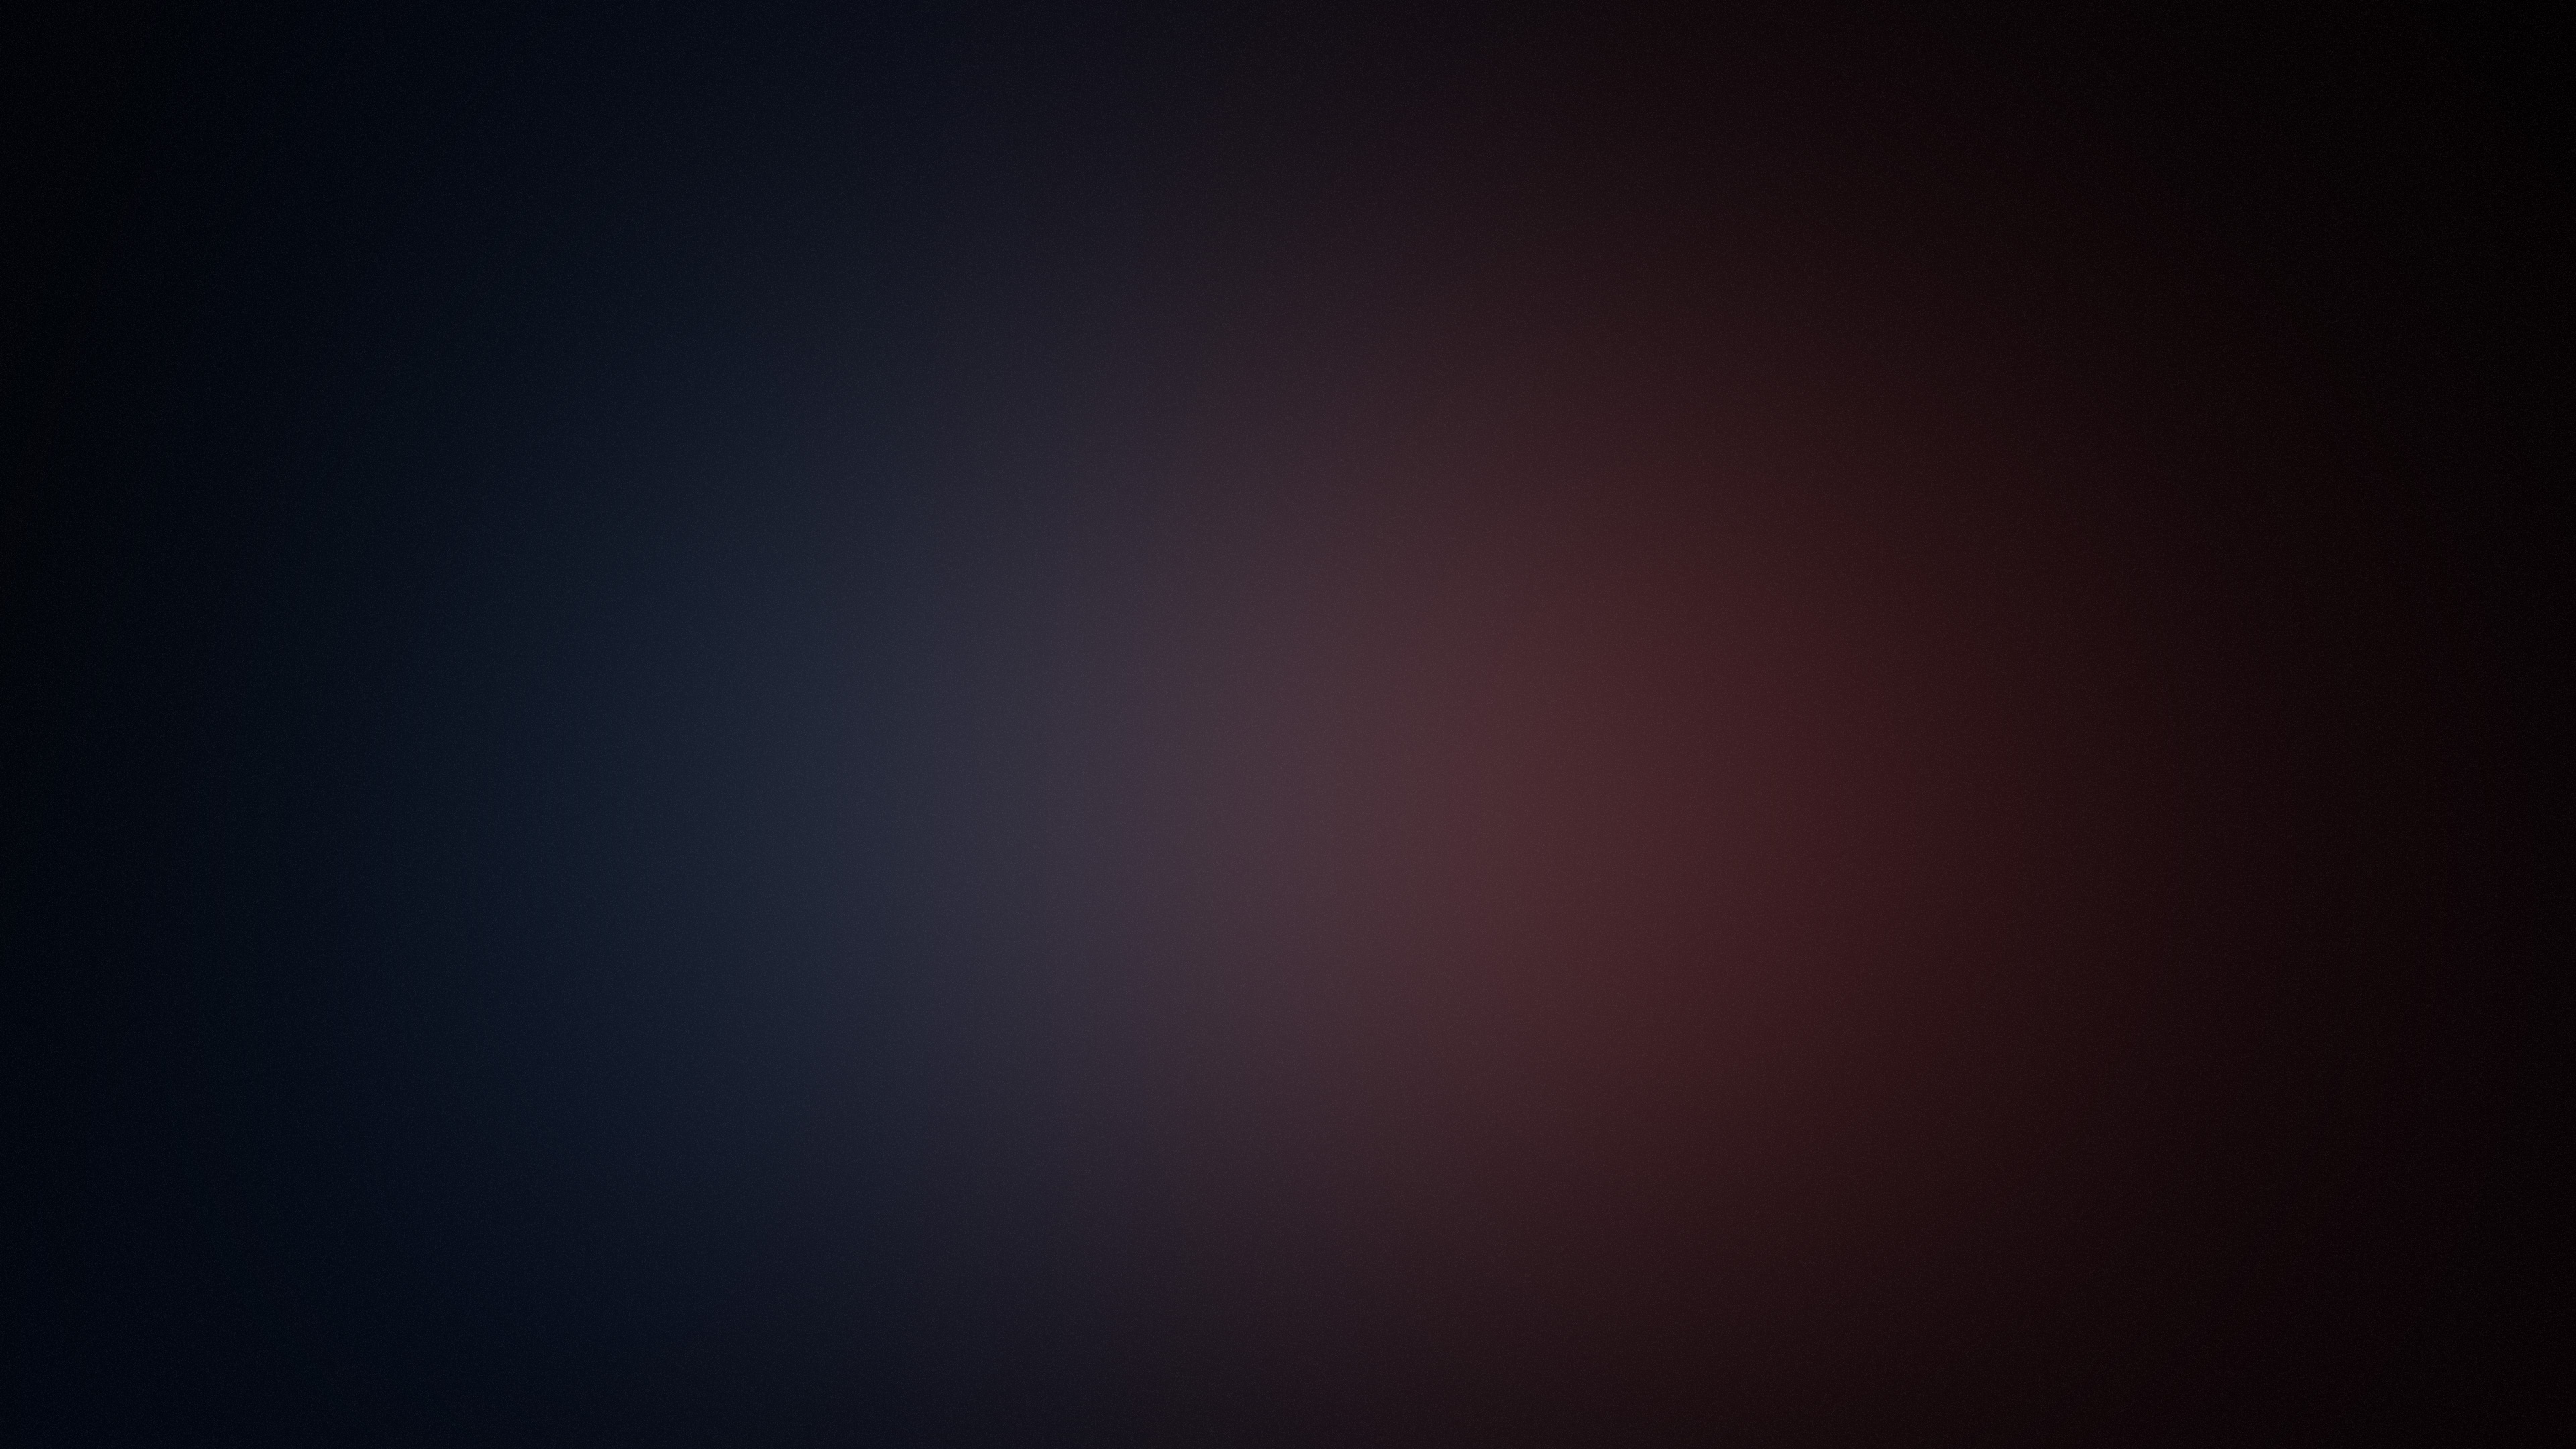 4k Dark Abstract: 2560x1440 Simple Subtle Abstract Dark Minimalism 4k 1440P